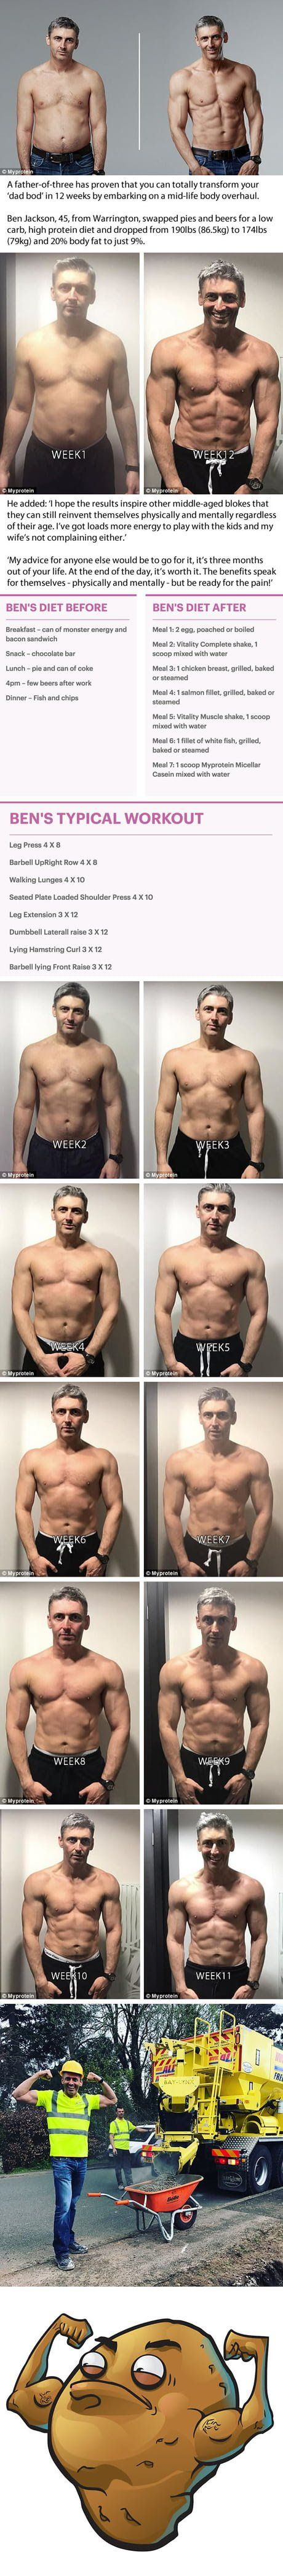 Father Of Three 45 Reveals The Results Of His Incredible 12 Week Transformation 12 Week Transformation Health Fitness Fitness Transformation